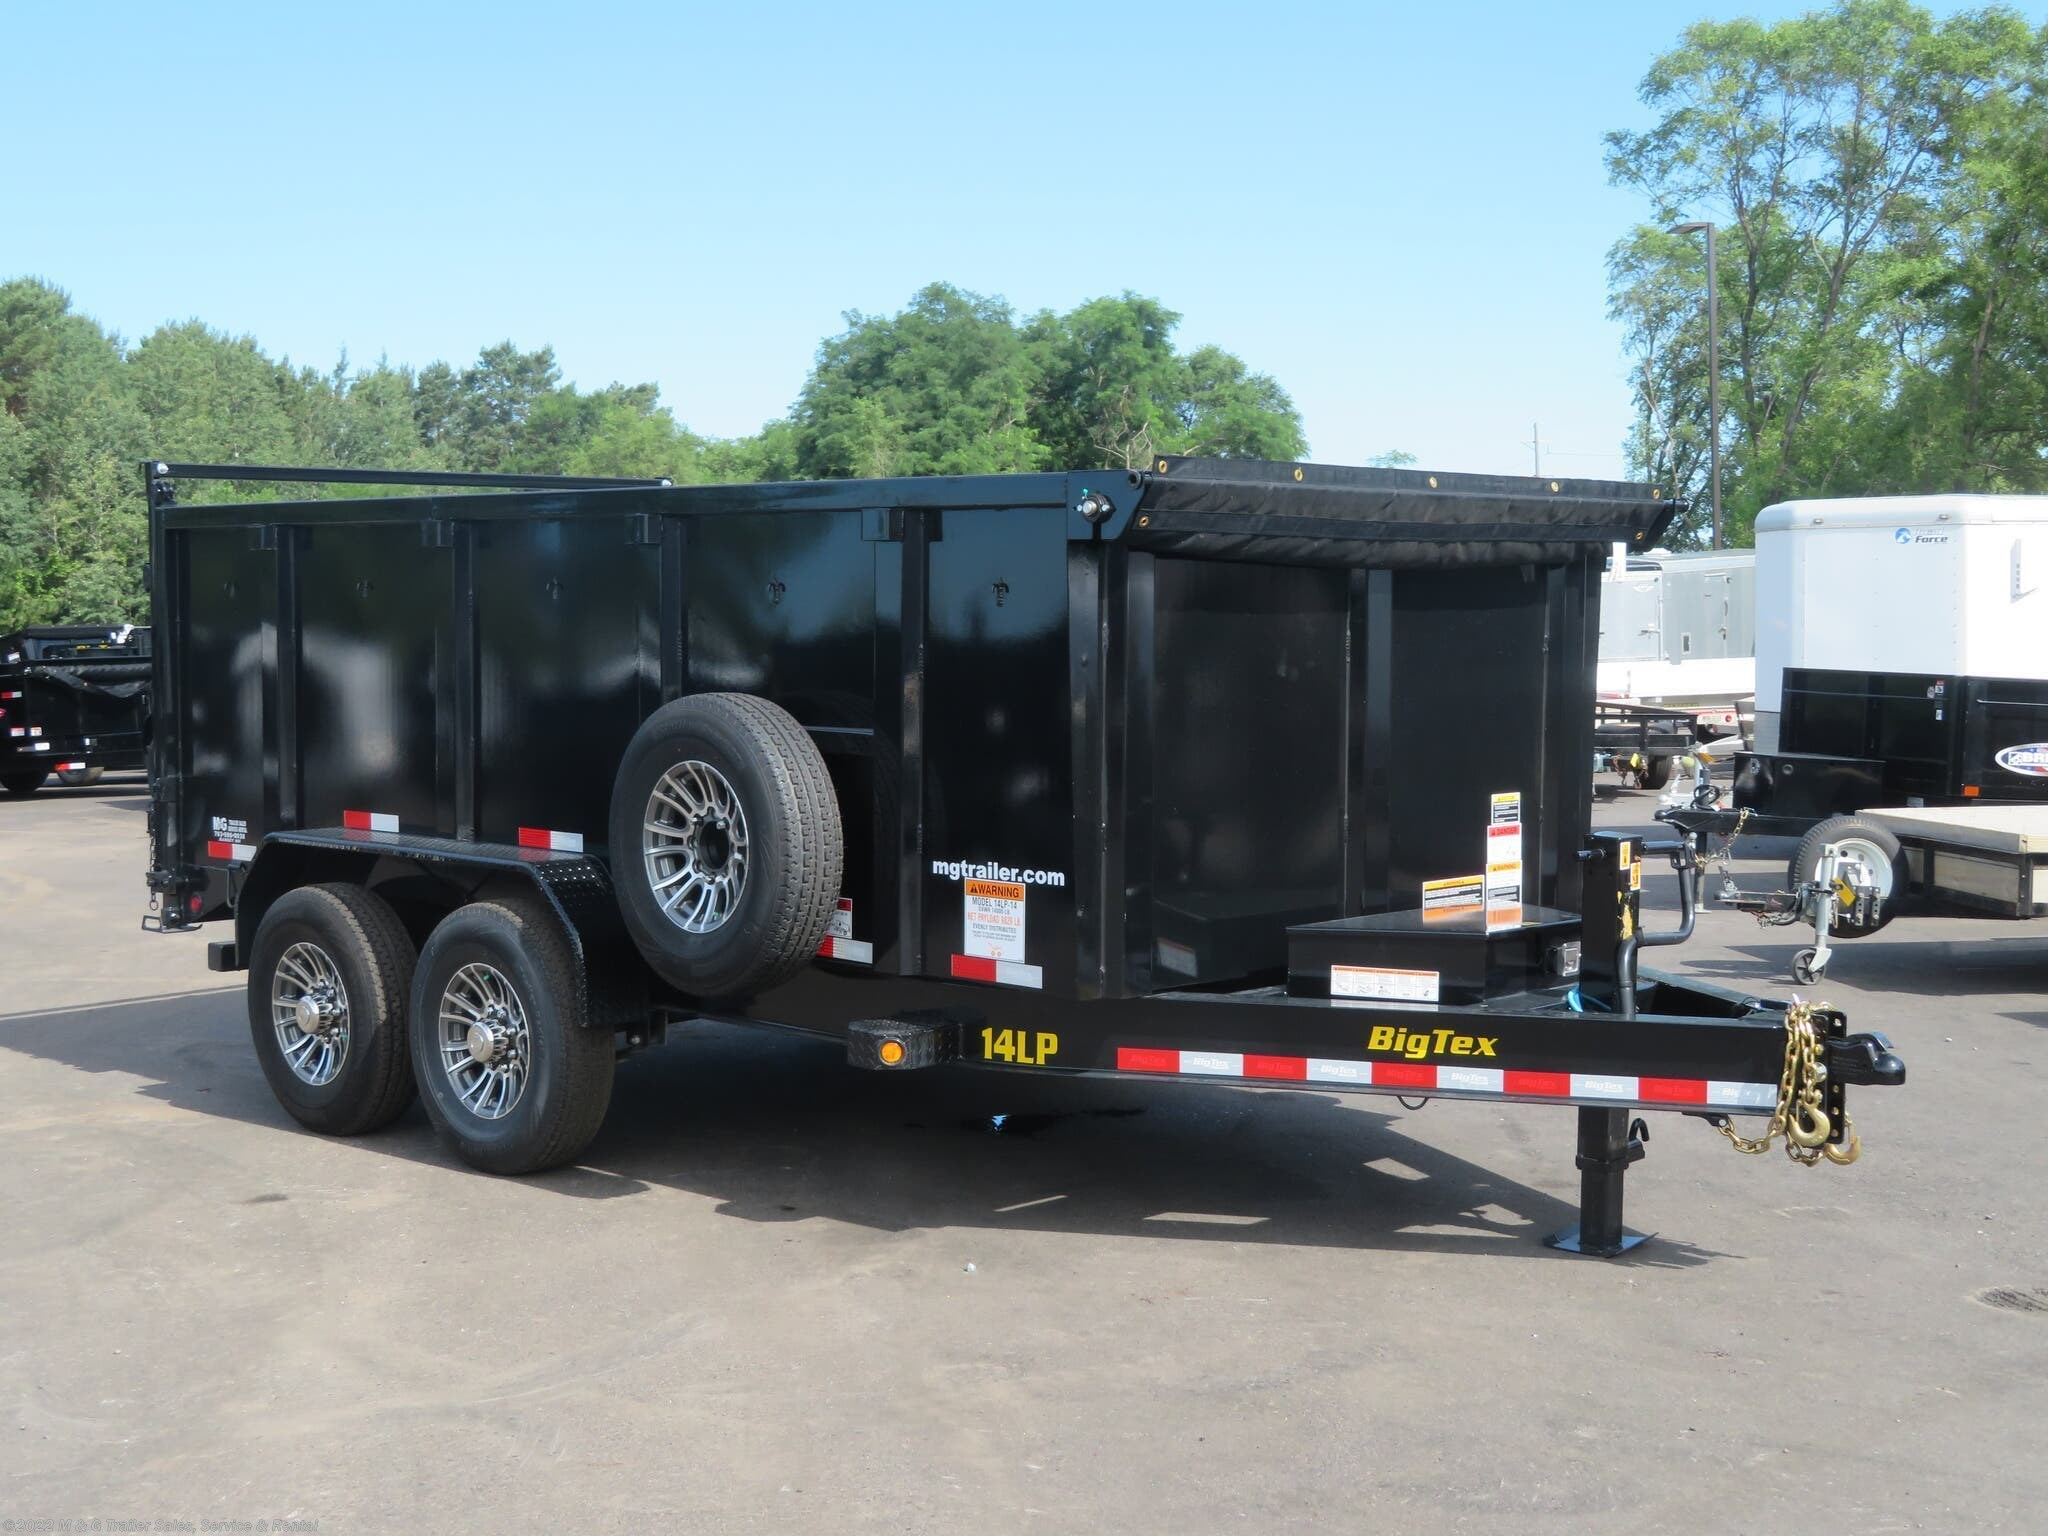 2022 Big Tex 14LP 14' With 4' High Side - Stock #132582